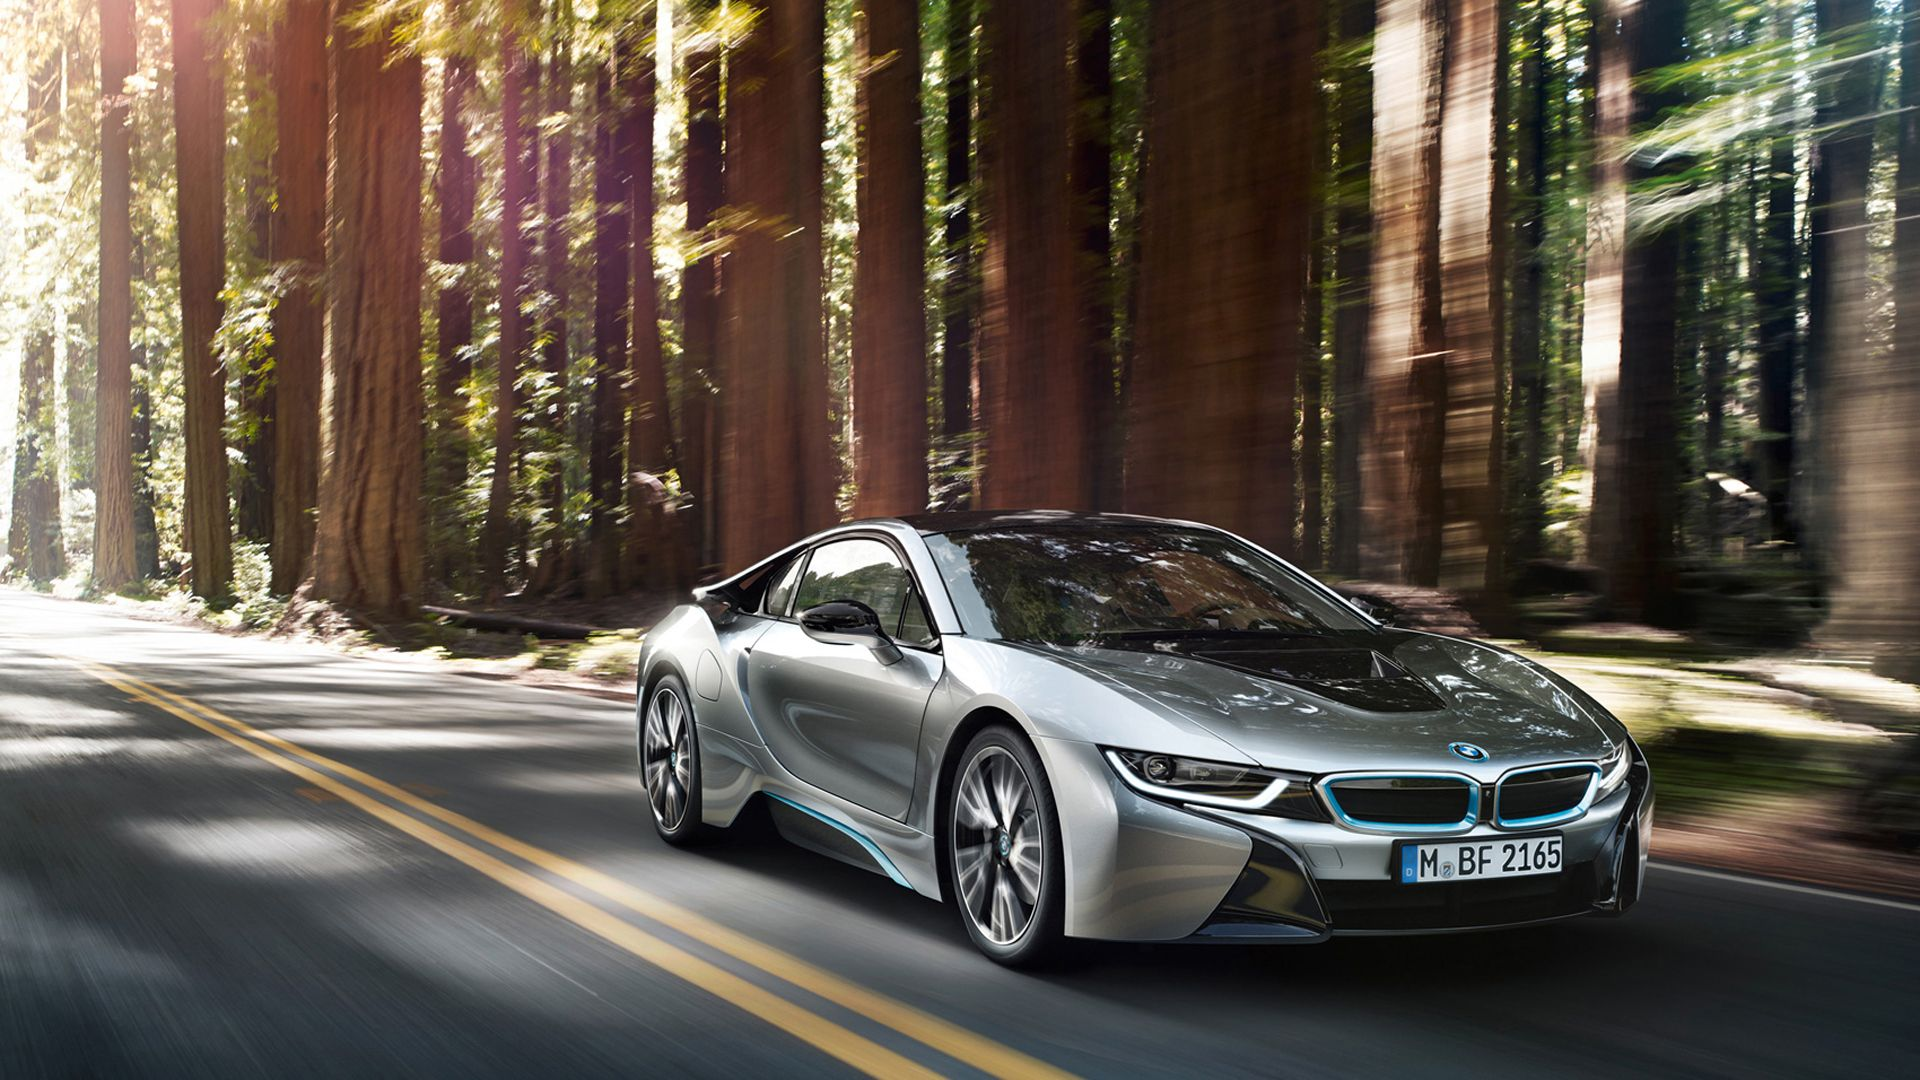 Undefined Bmw I8 Wallpaper (59 Wallpapers) | Adorable Wallpapers